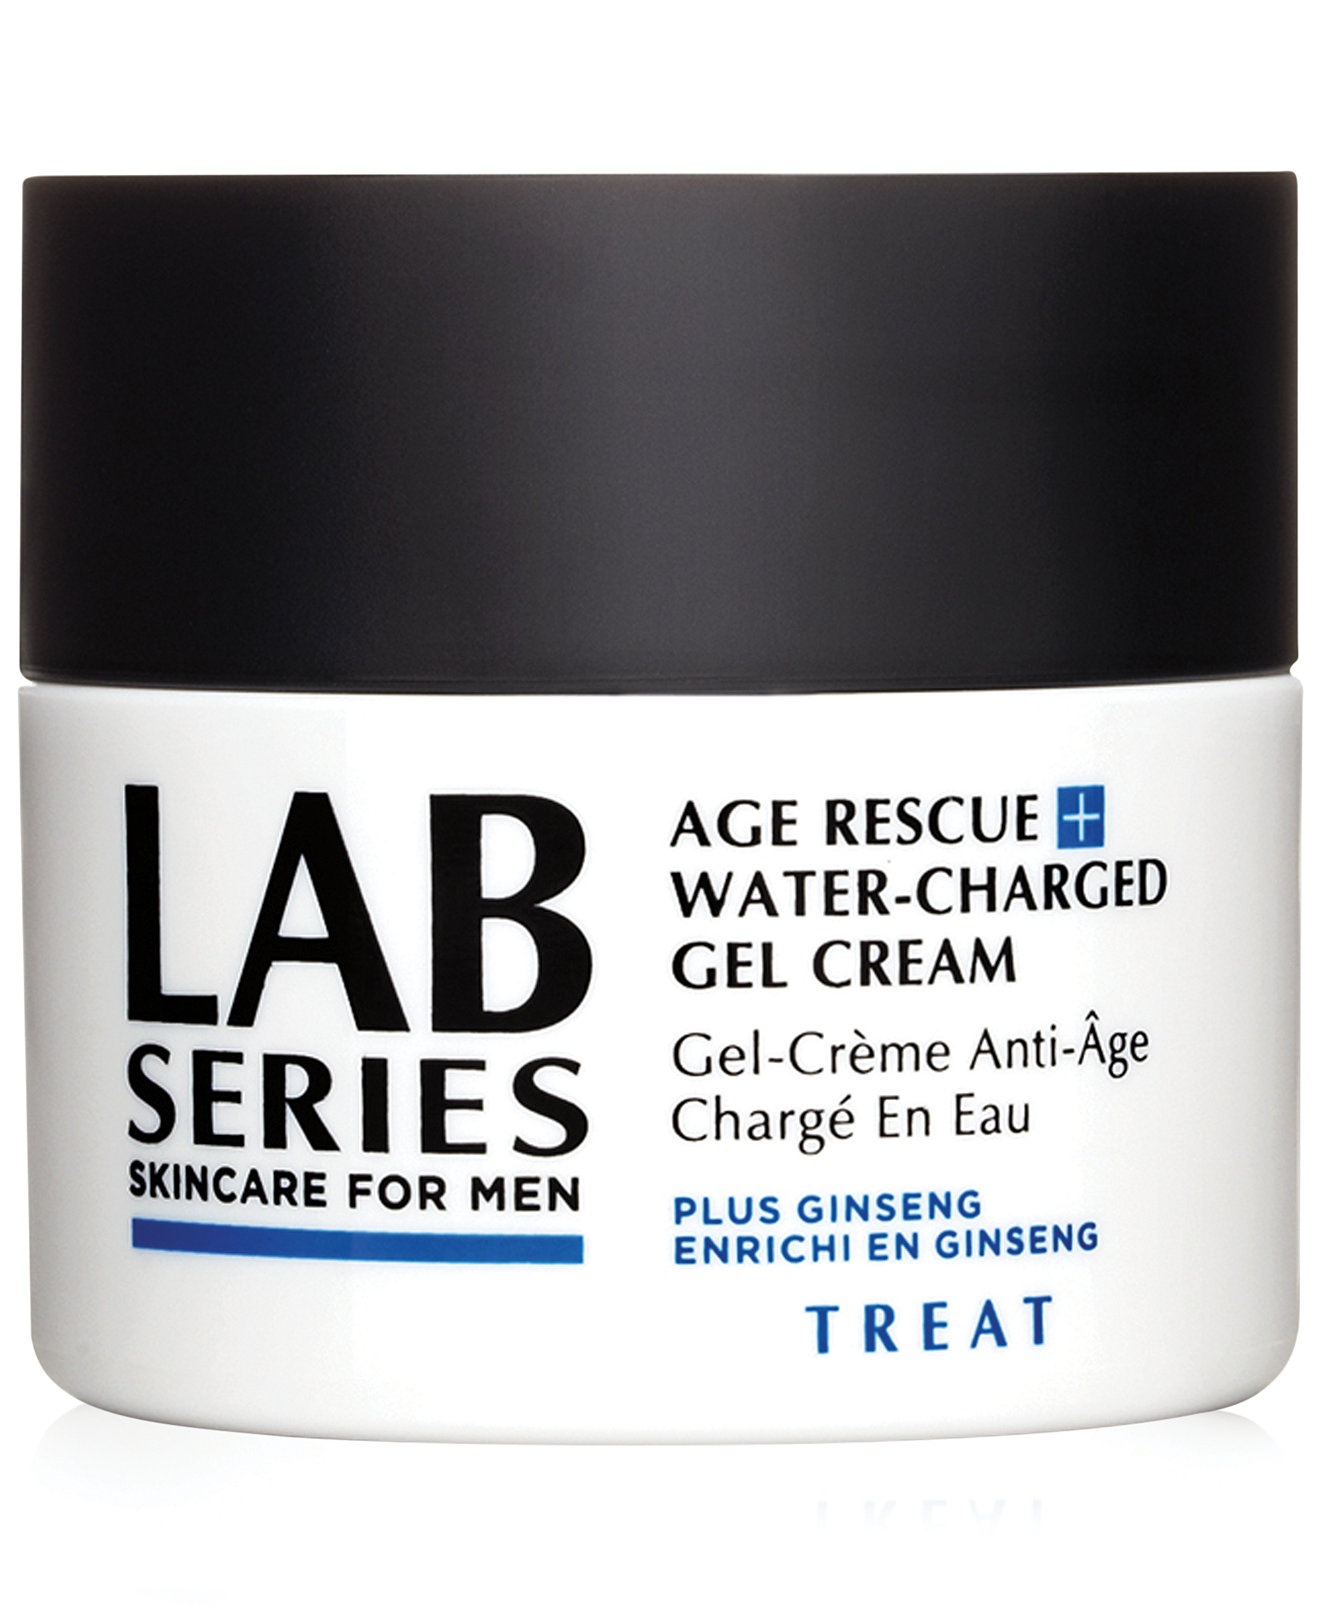 Free Lab Series Age Rescue Gel Cream Sample